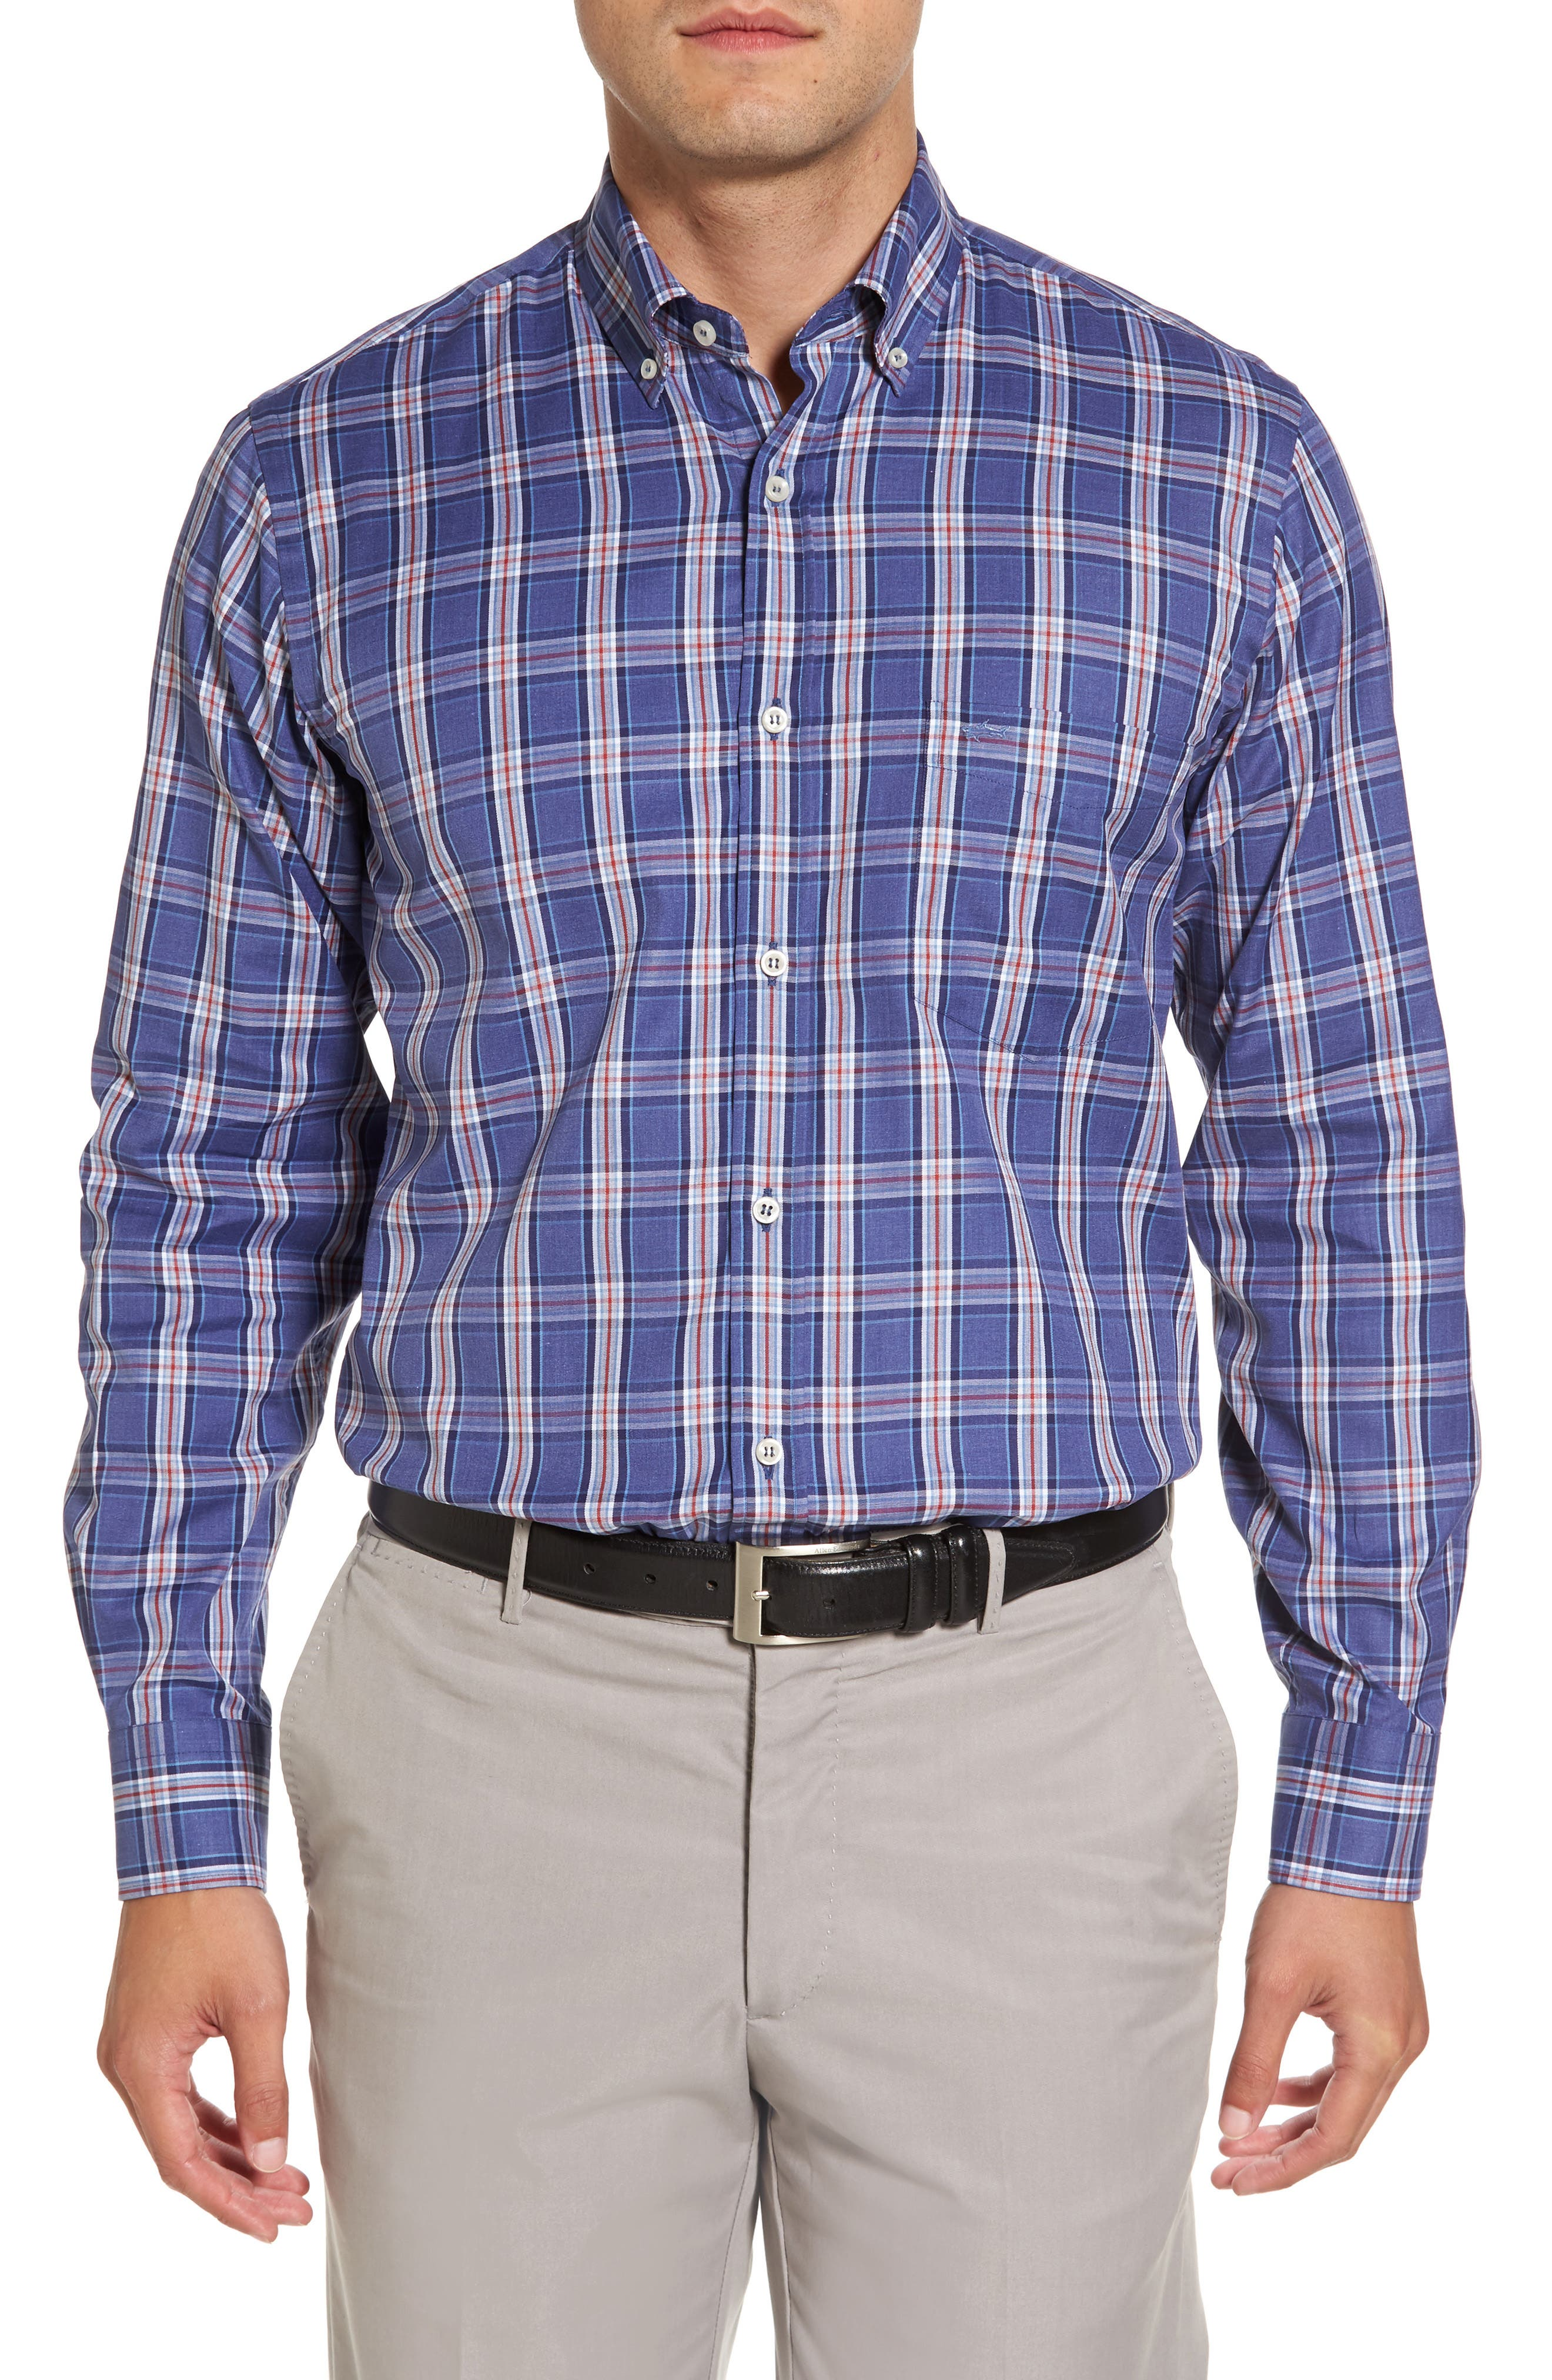 Paul&Shark Plaid Sport Shirt,                             Main thumbnail 1, color,                             400